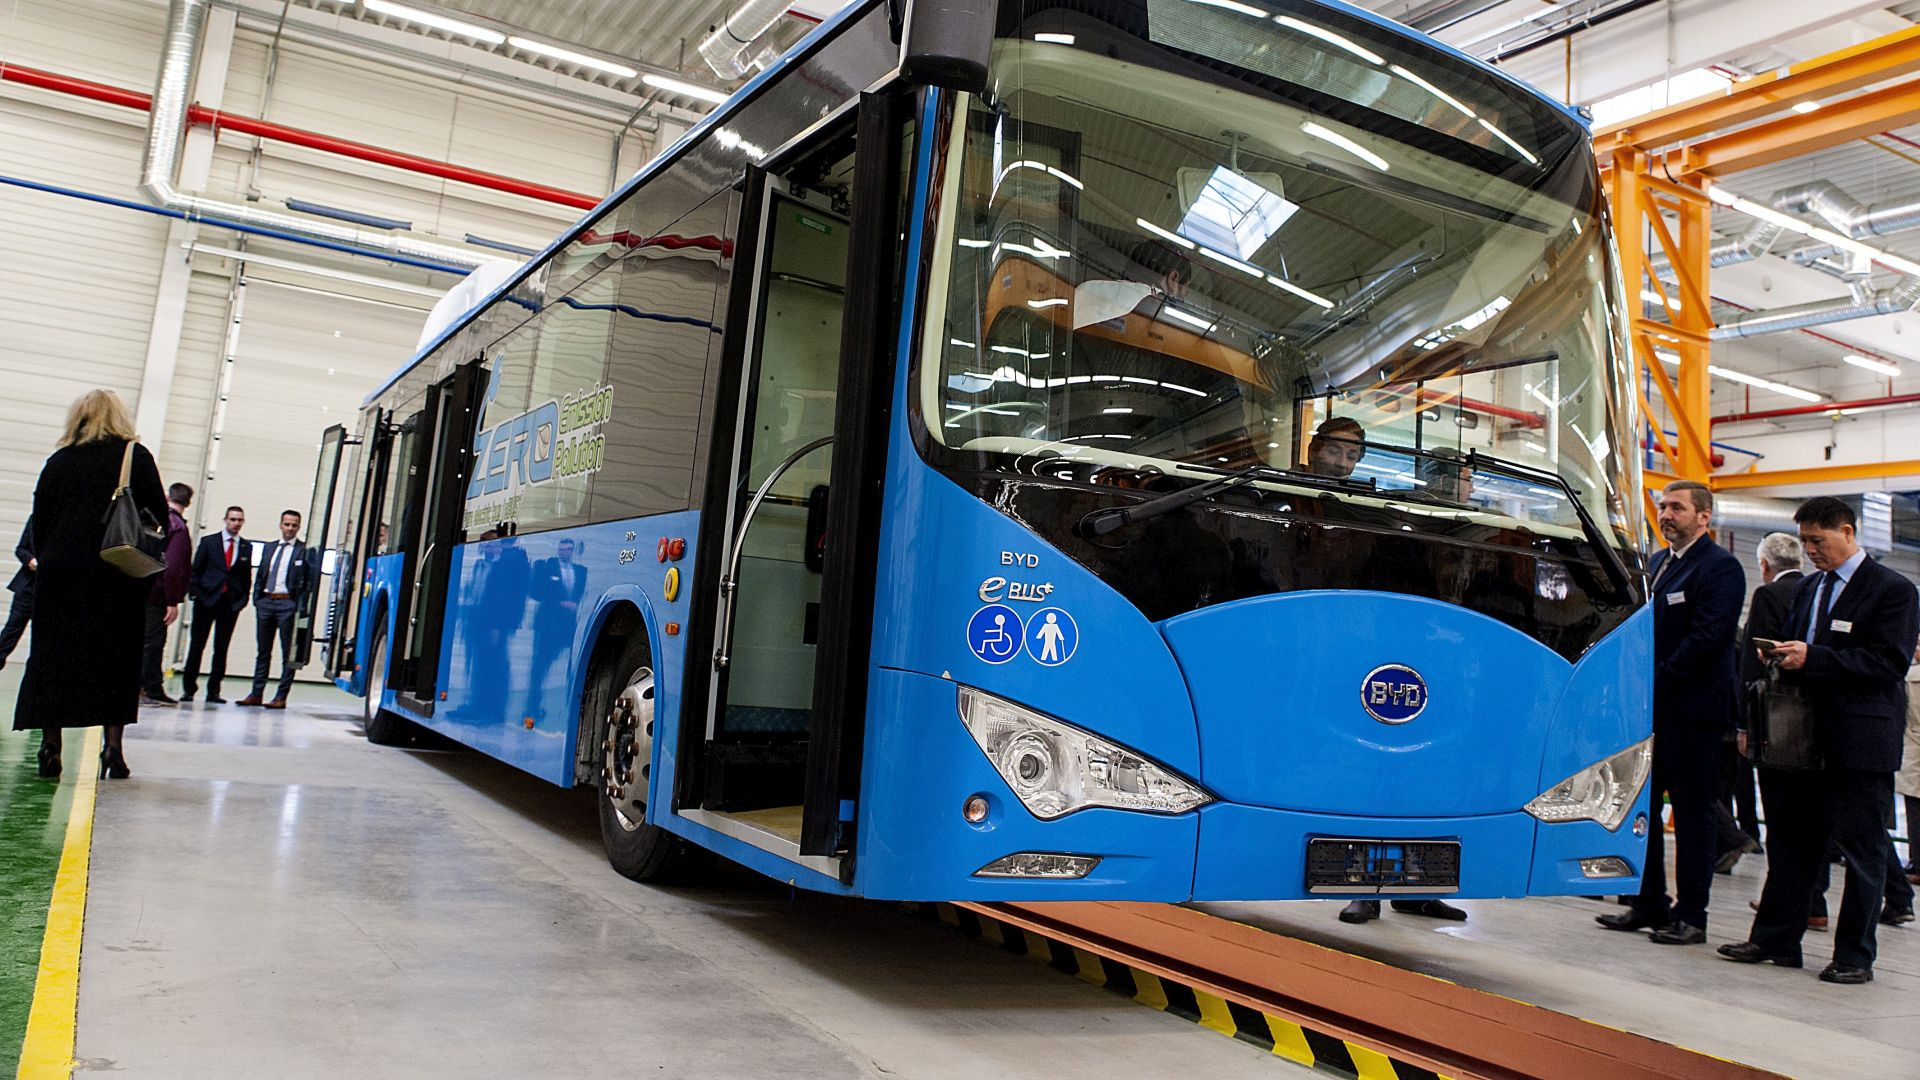 BYD opened its first European electric bus factory in Komárom